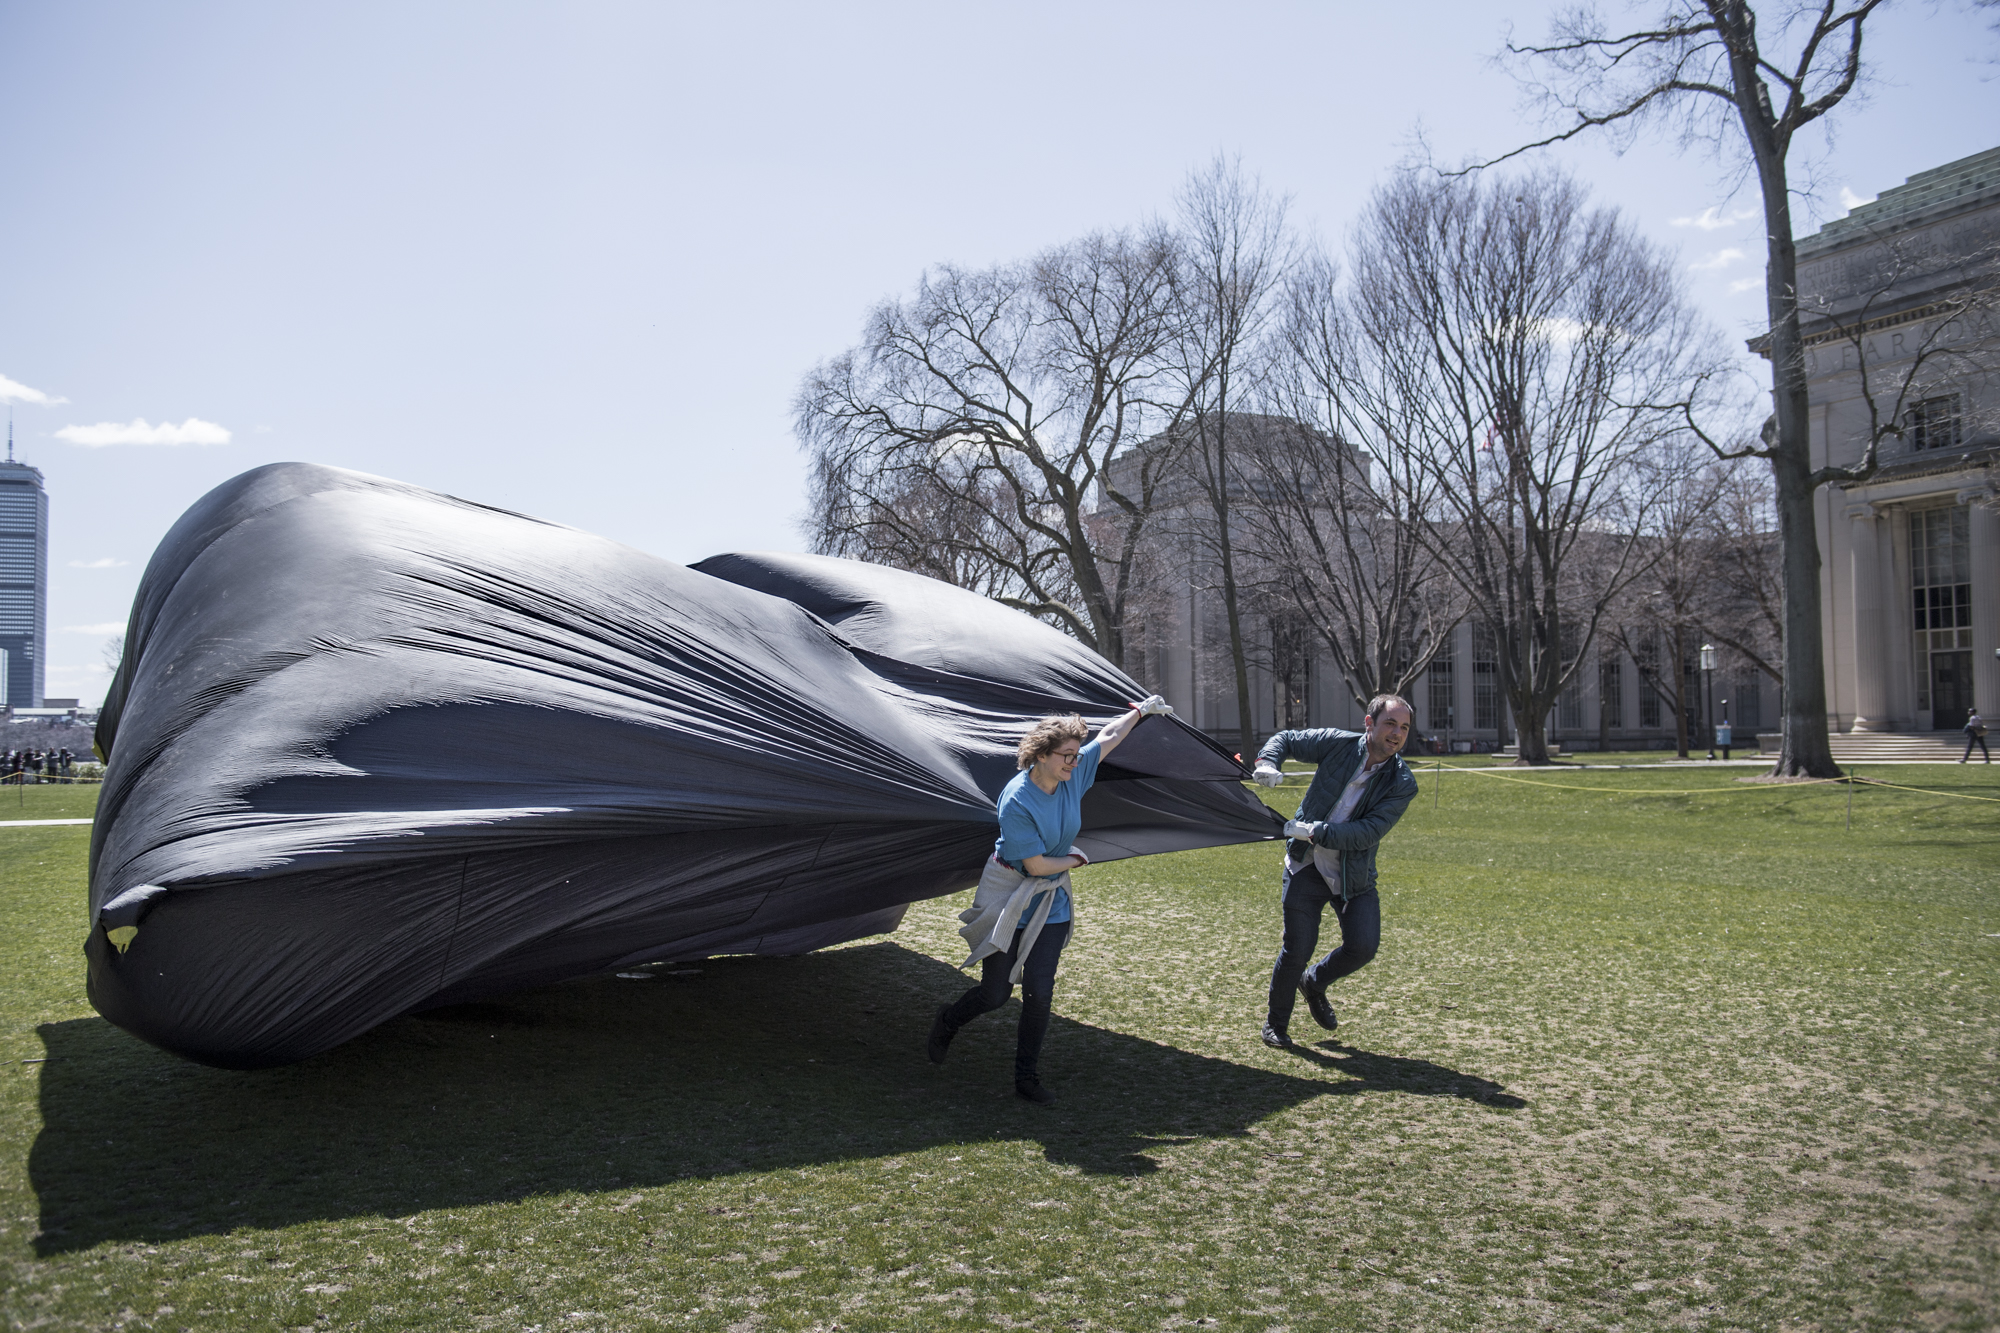 This is how you inflate an Aerocene sculpture: by running and holding it's opening into the wind!